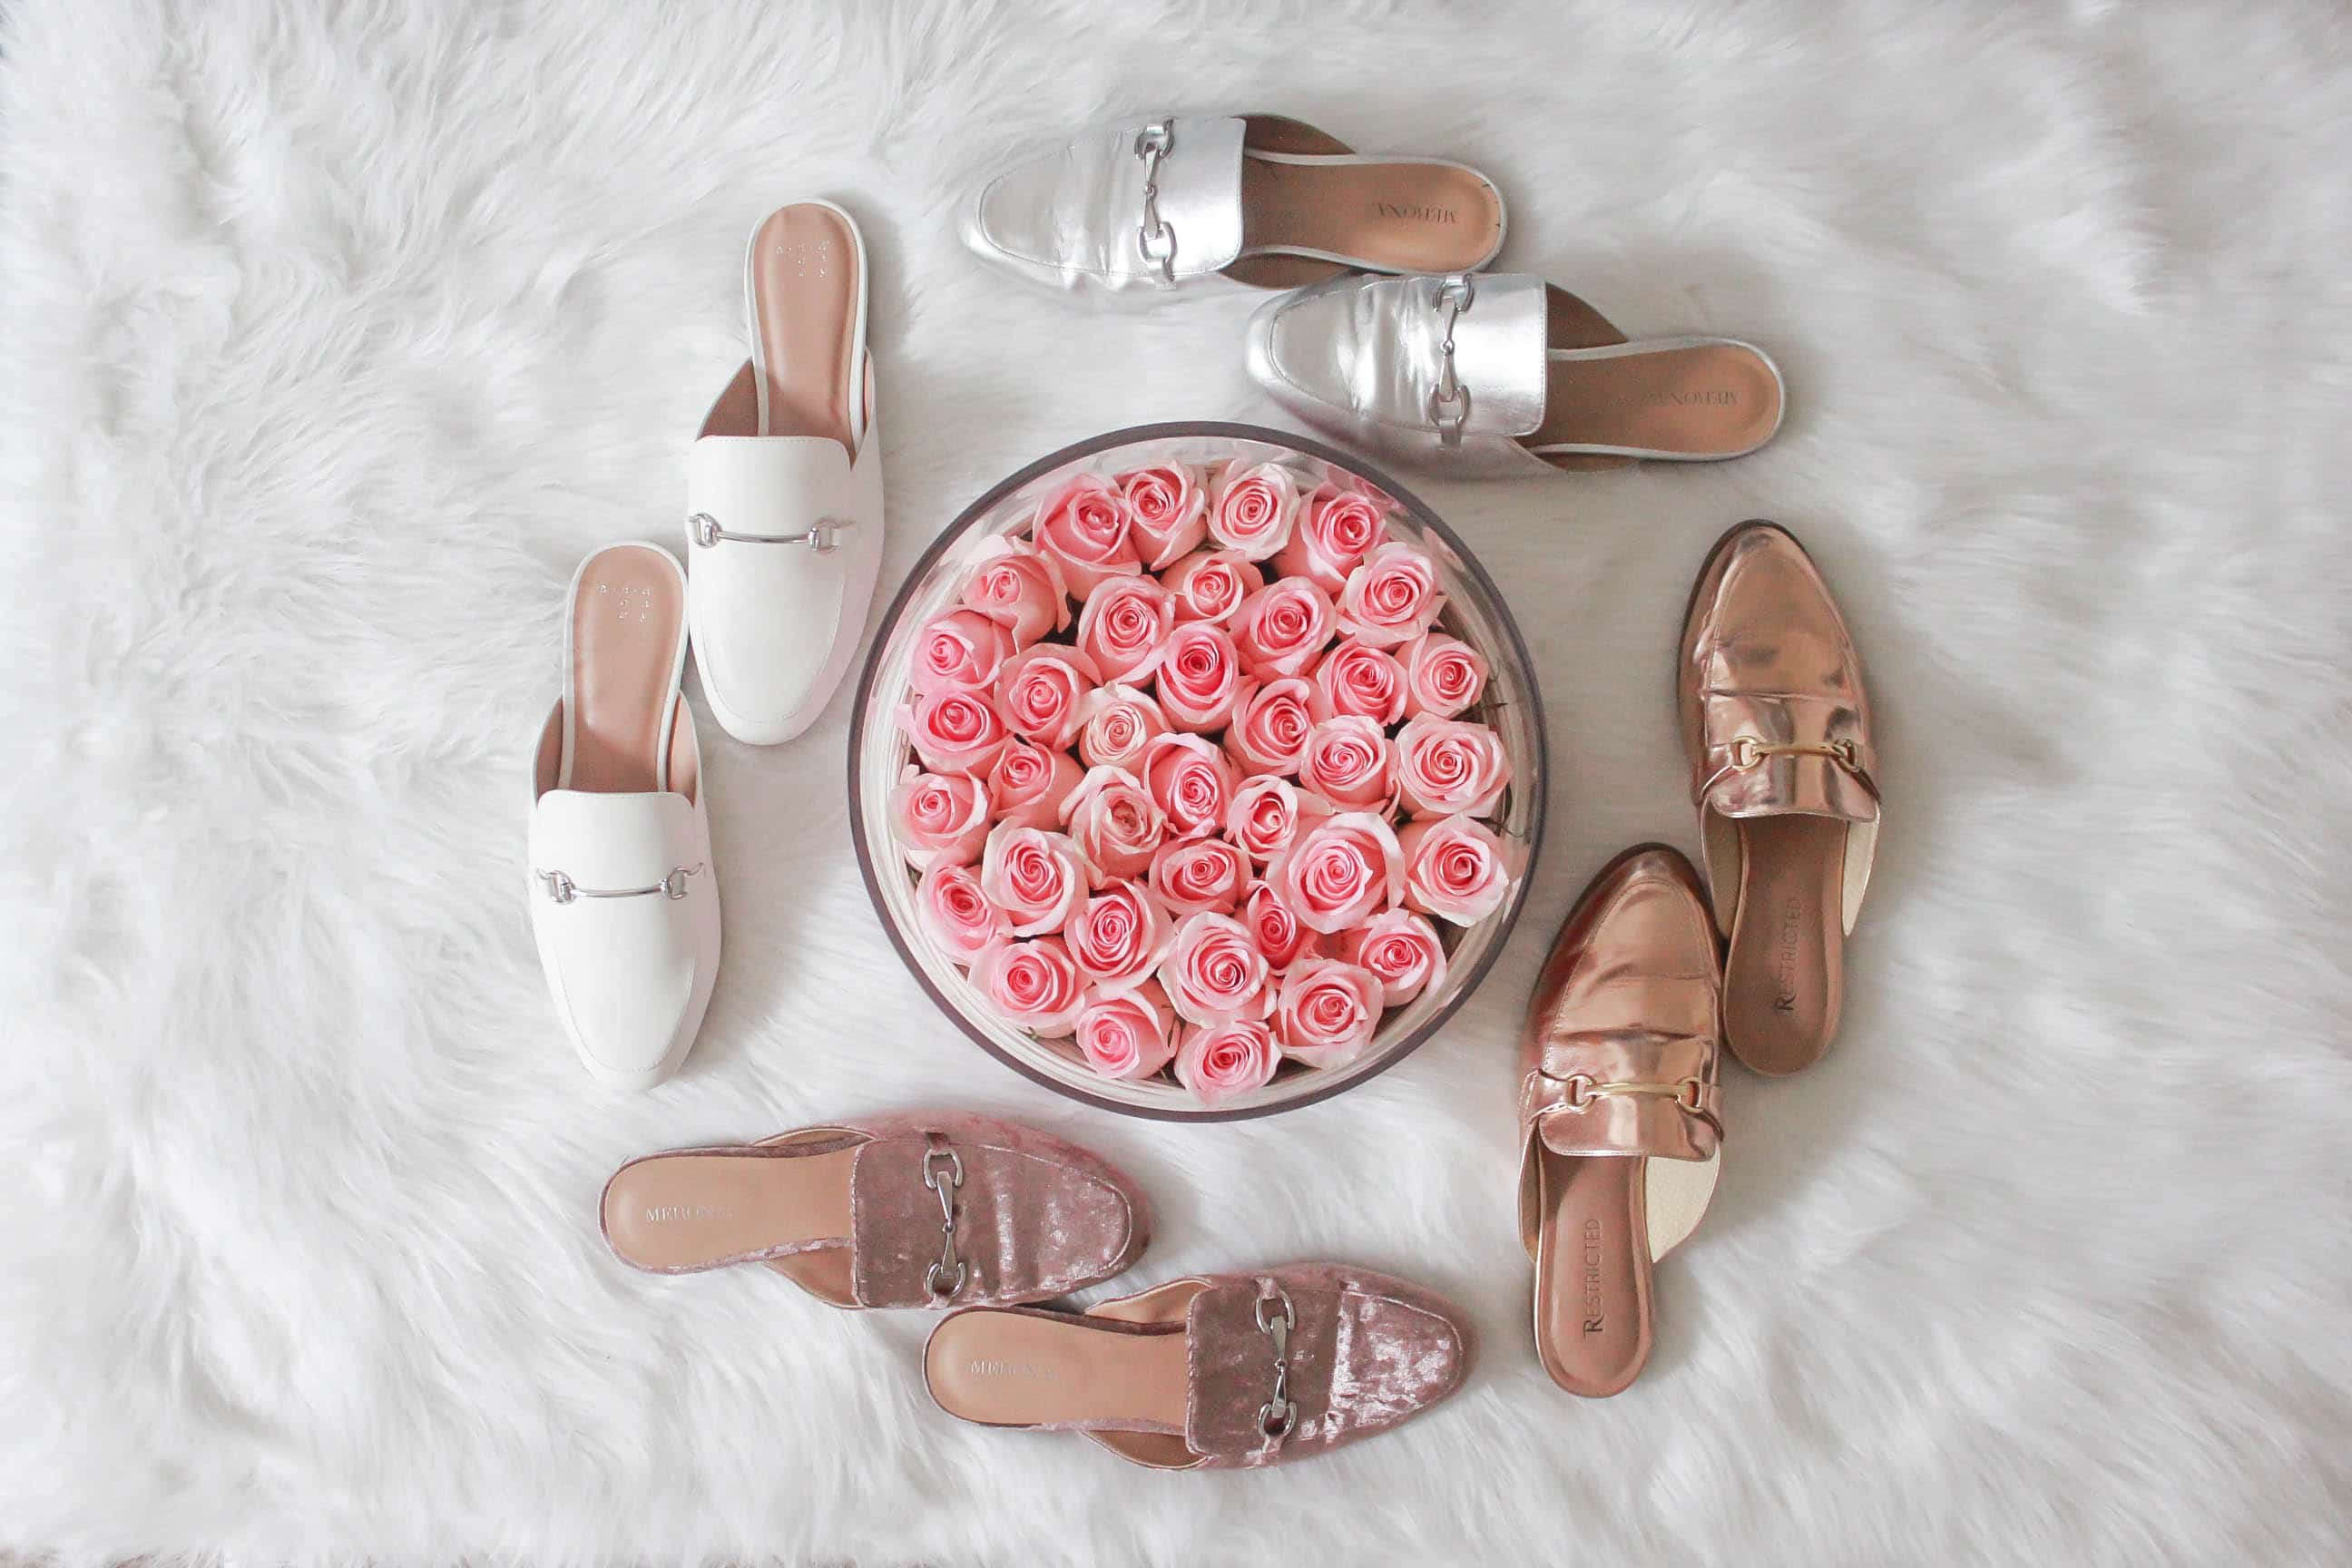 missyonmadison, missyonmadison instagram, melissa tierney, mules, spring mules, mules slides, target, target style, target mules, dsw mules, nordstrom mules, gucci mules, mules with fur, mules for spring, how to style mules, how to wear mules, spring fashion, spring style guide, spring style 2018, spring fashion 2018, fashion blogger, style blogger, shopping guide, roses that last a year, roses in a box, bloglovin, la blogger, fashion blogger, style inspo,